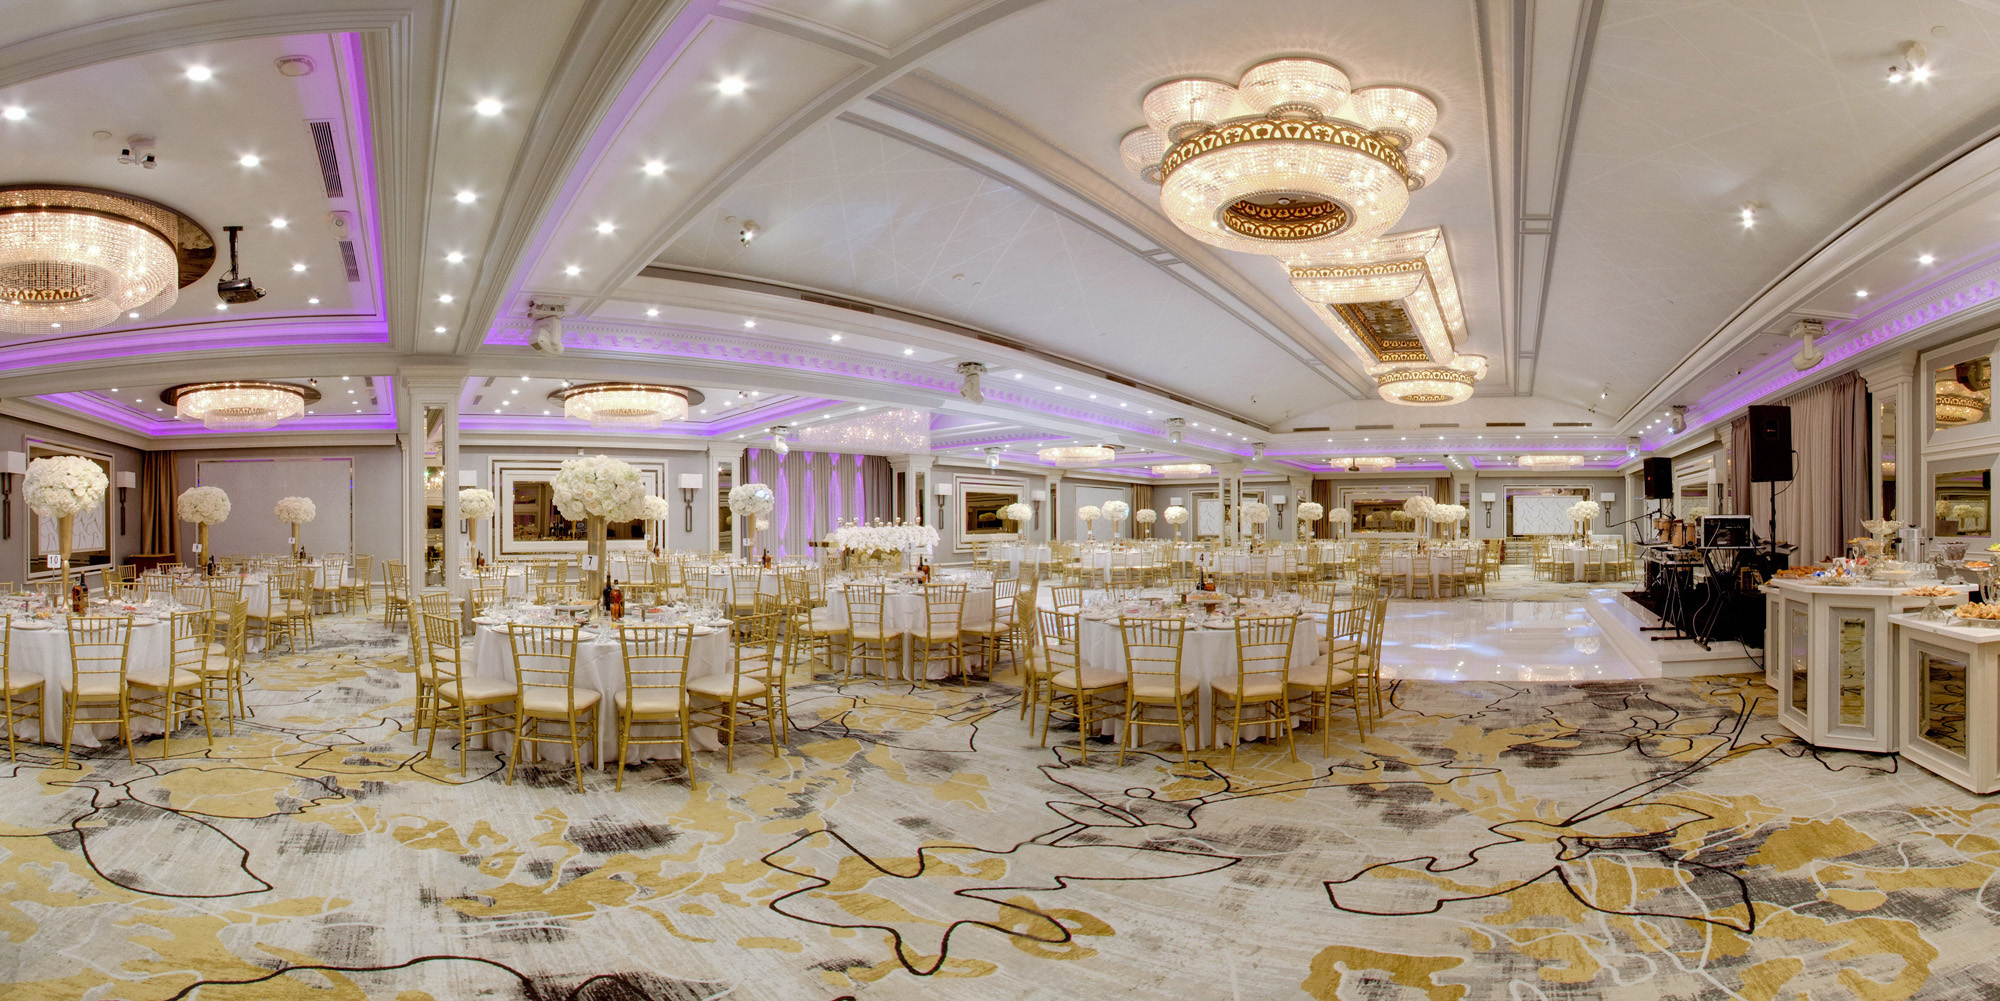 Contemporary event wedding venues in glendale ca glenoaks view more in gallery junglespirit Images